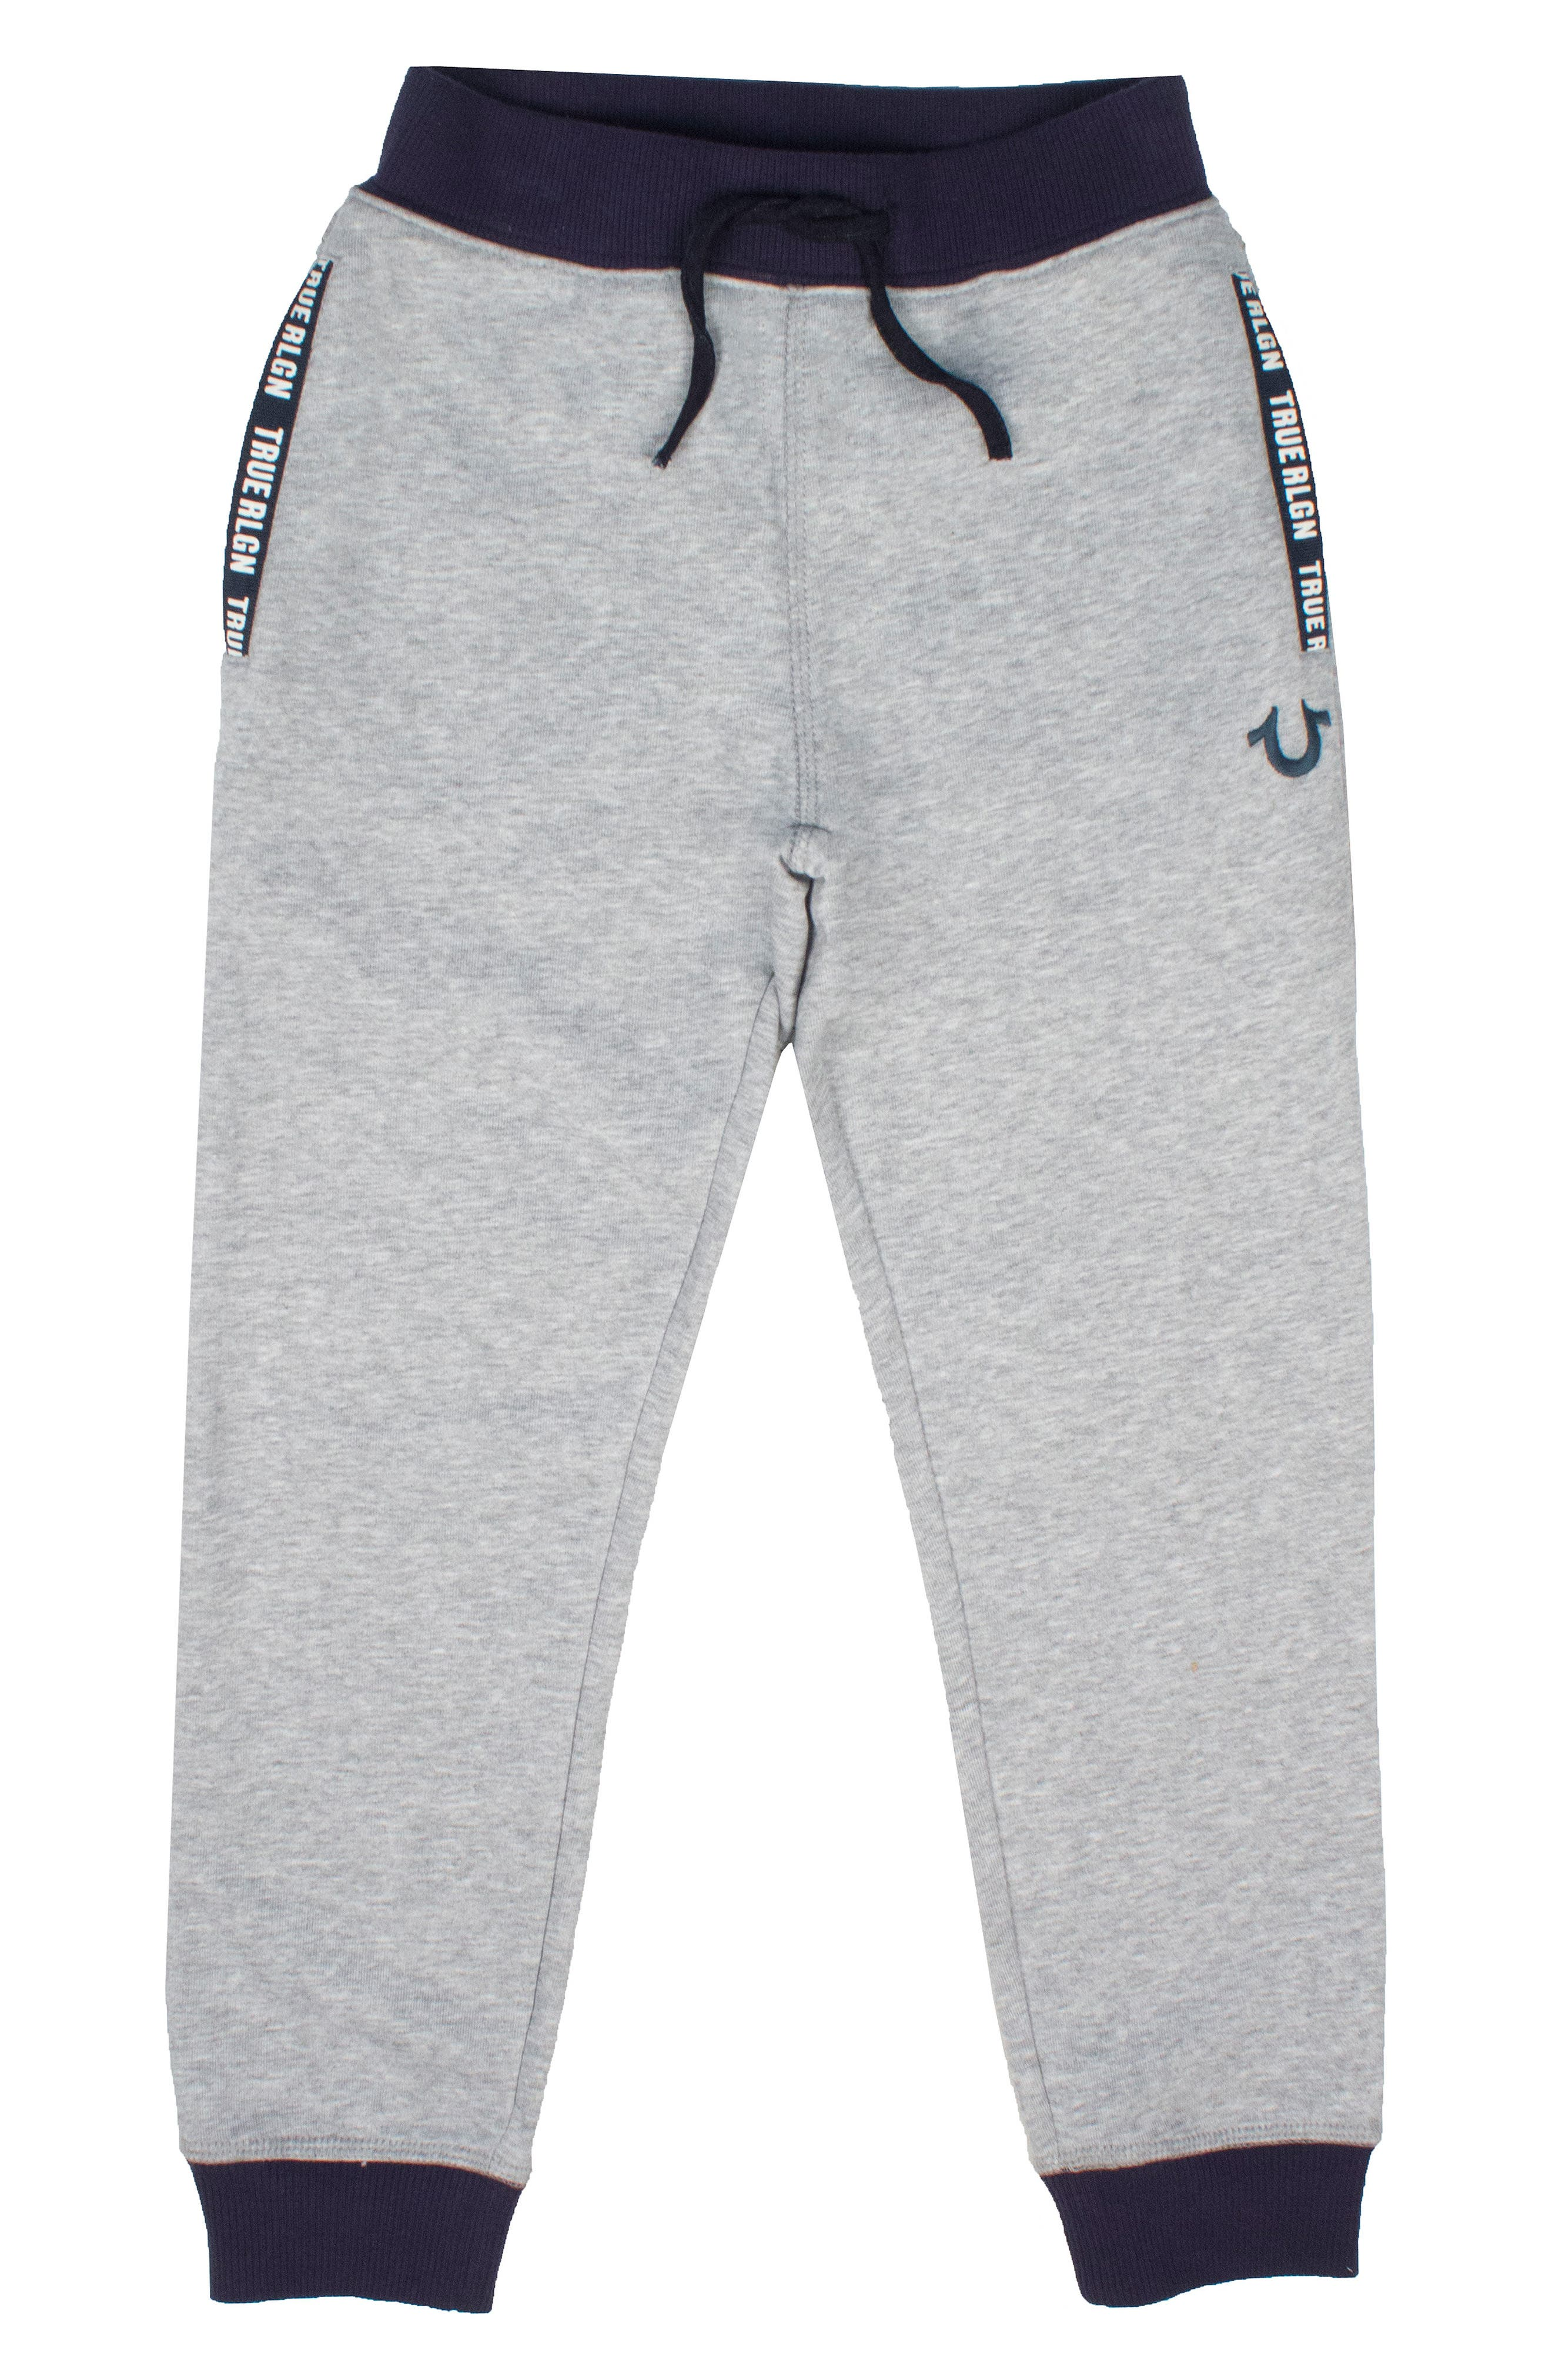 Tape Sweatpants,                             Main thumbnail 1, color,                             Heather Grey